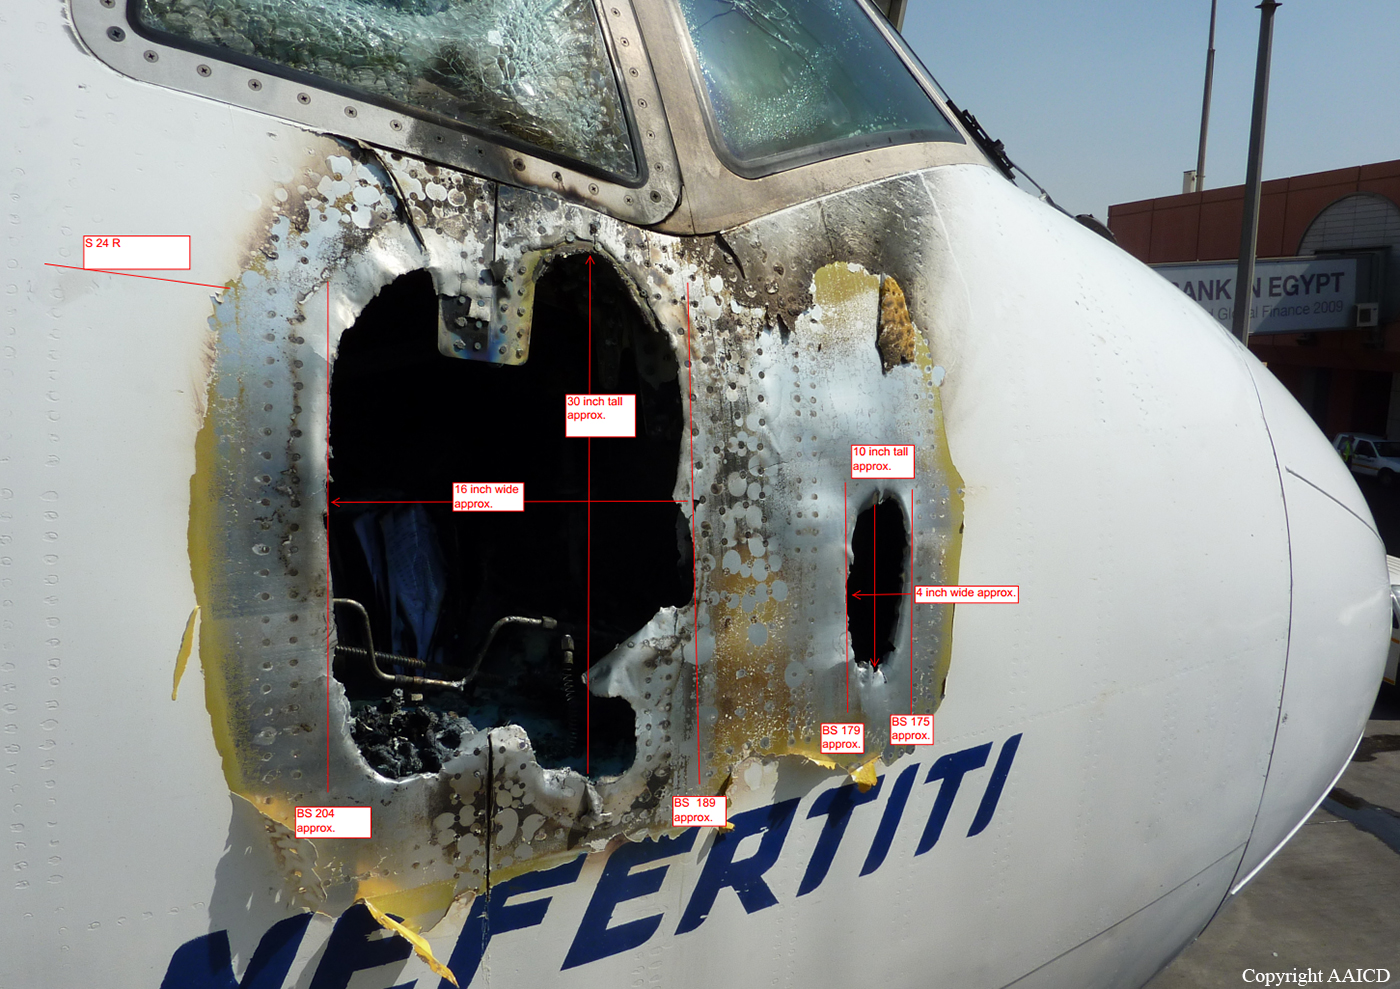 home electrical wiring pdf ground fire of a boeing 777 266er in cairo bureau of  ground fire of a boeing 777 266er in cairo bureau of